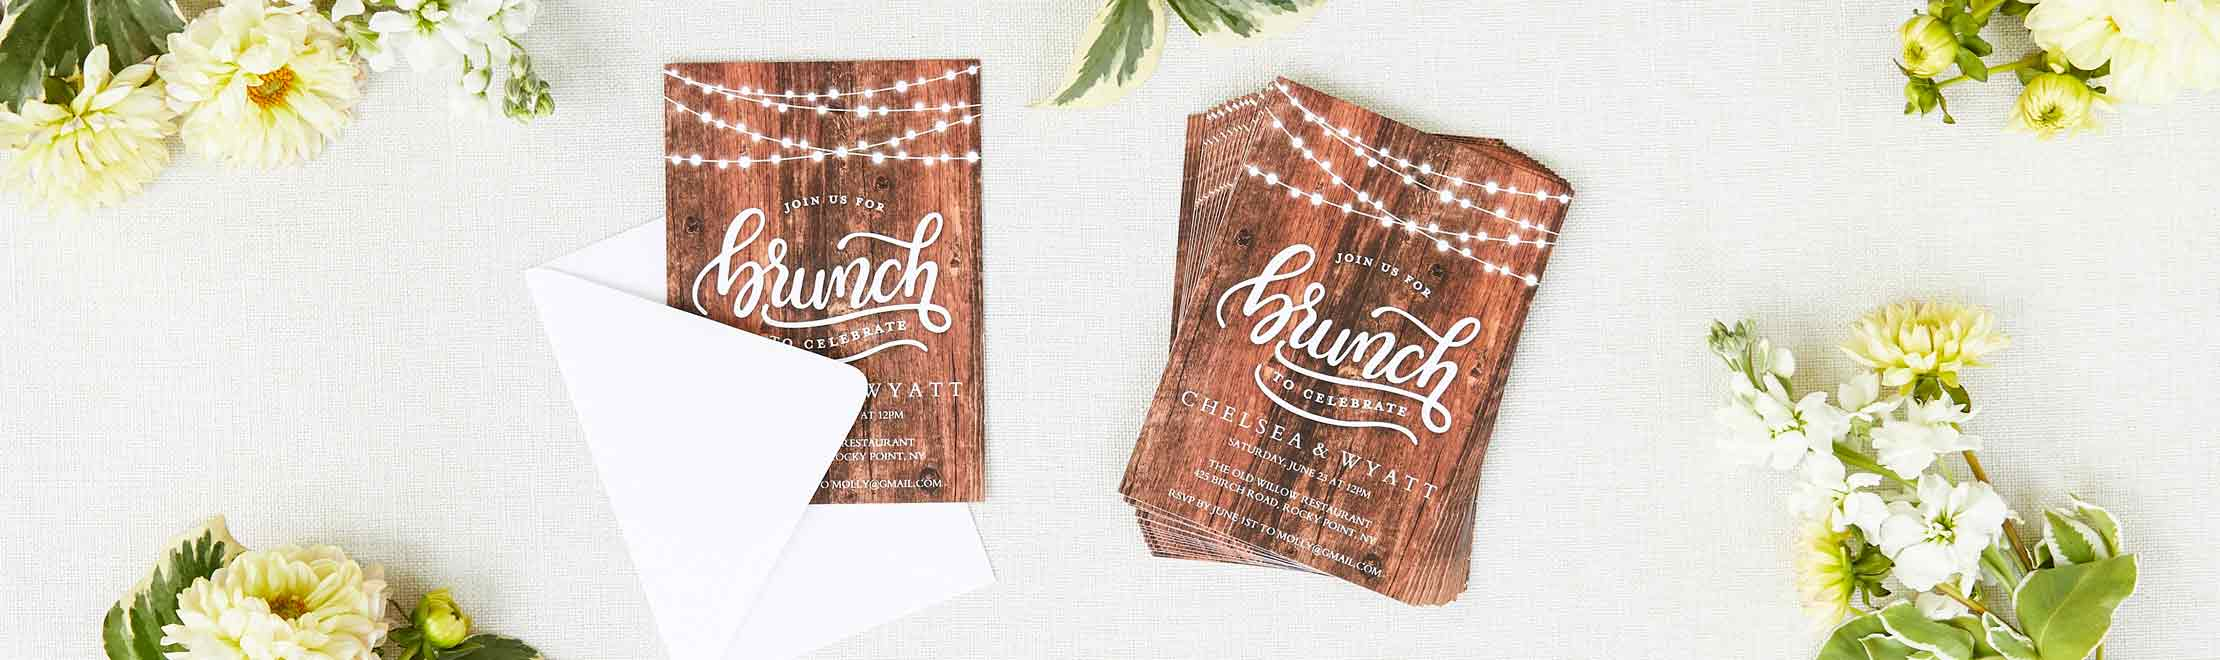 How to Word Reception-Only Wedding Invitations | Walgreens Photo ...